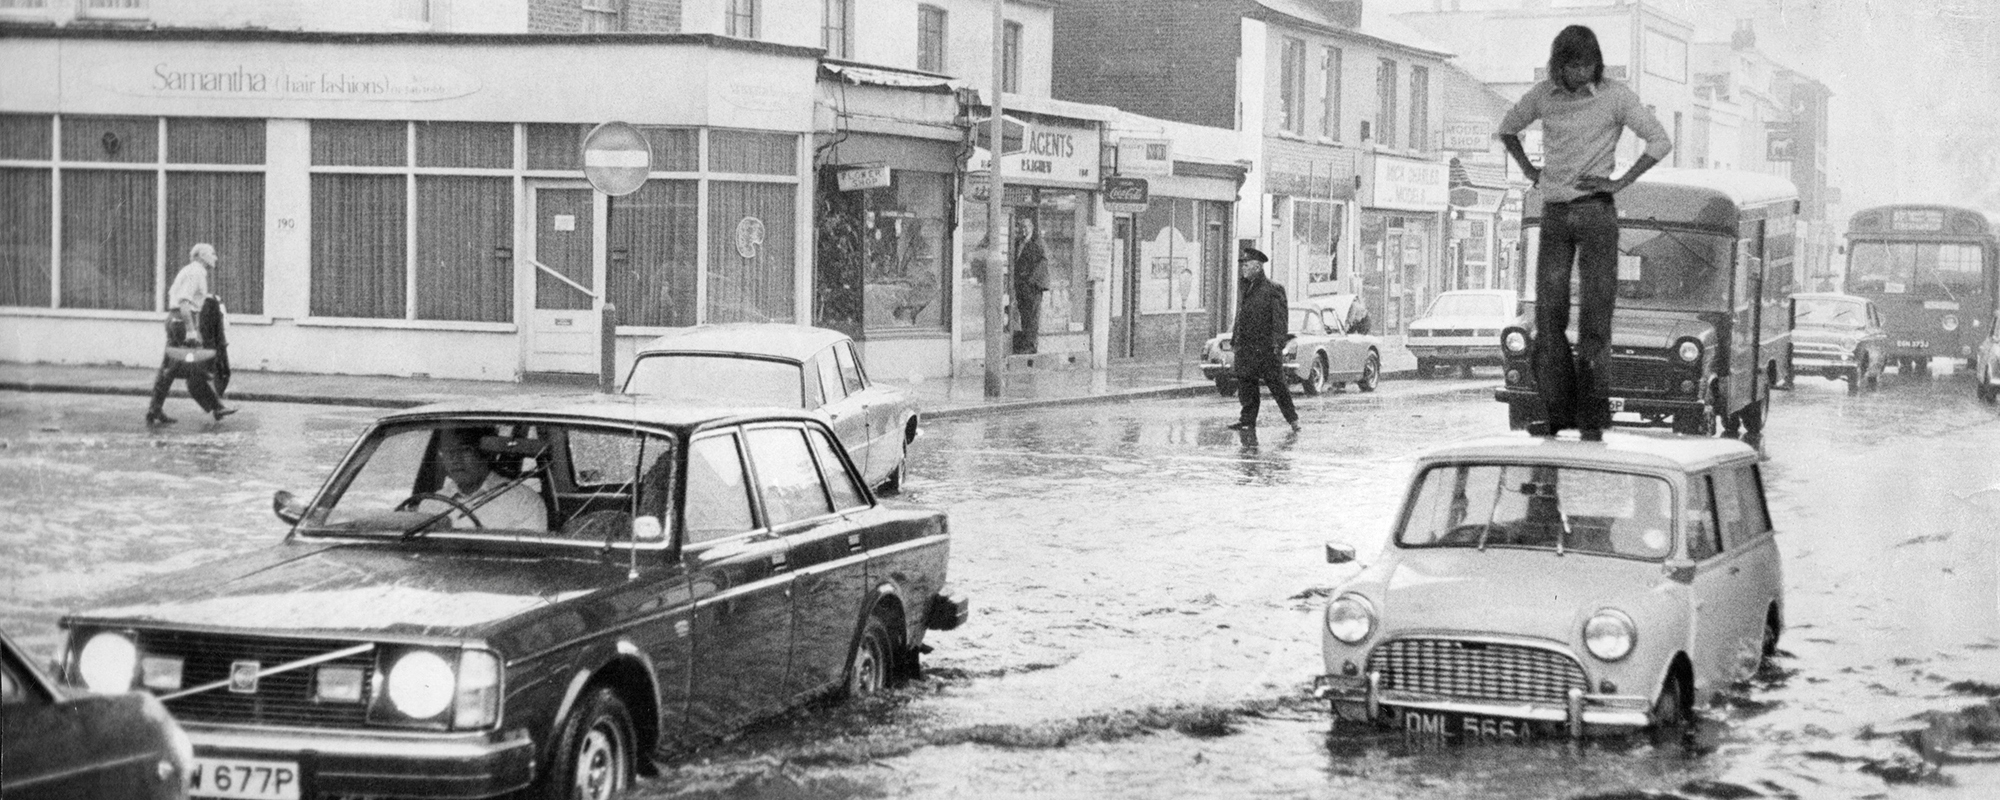 Kingston flooded in 1974 after severe drought was followed by heavy rain Photo: Rex